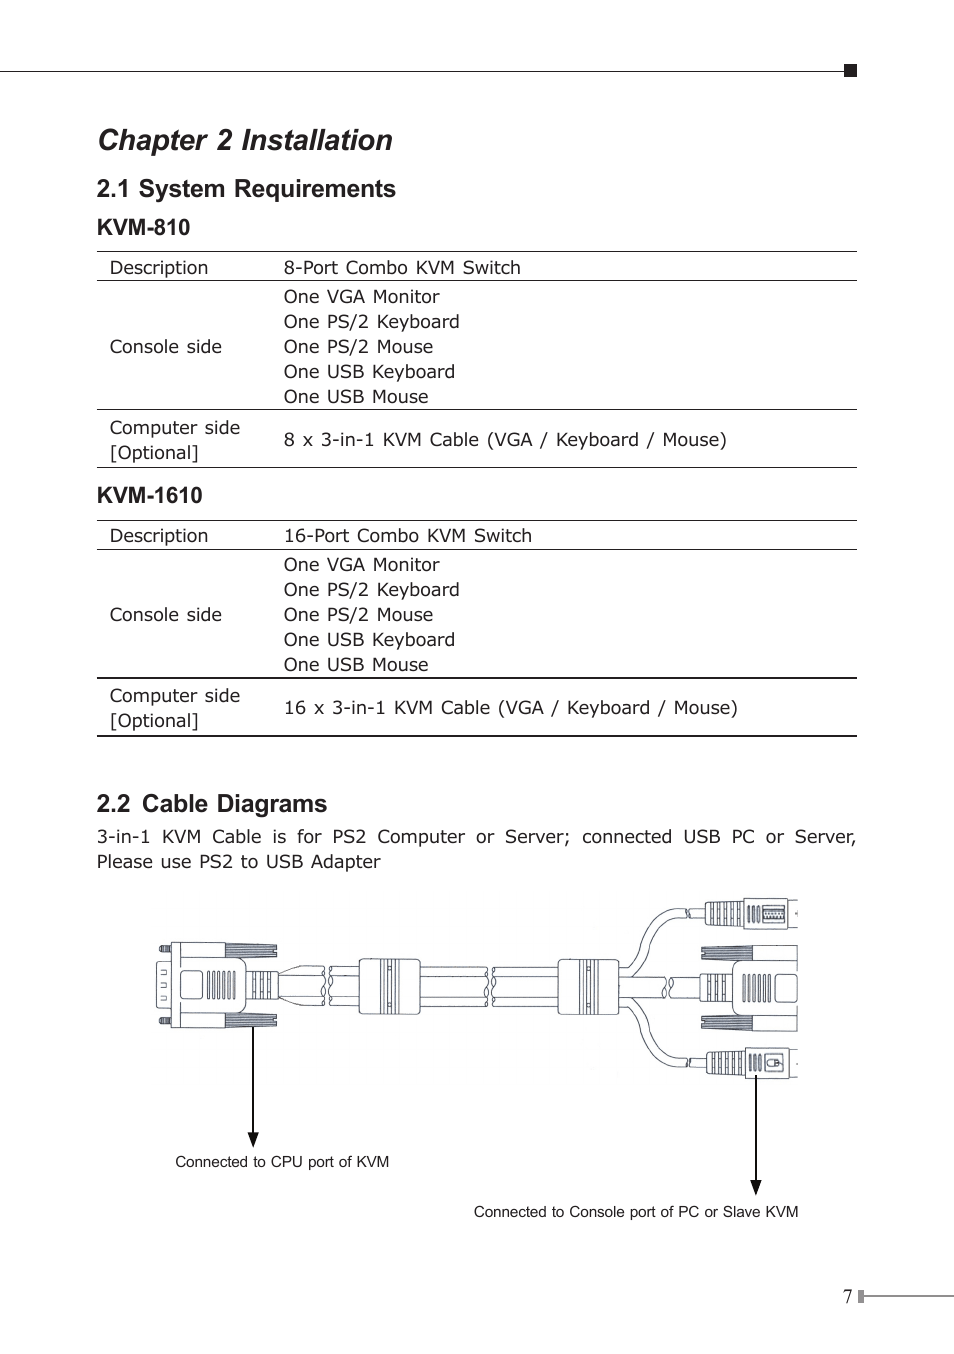 medium resolution of chapter 2 installation 1 system requirements 2 cable diagrams planet kvm 1610 user manual page 7 20